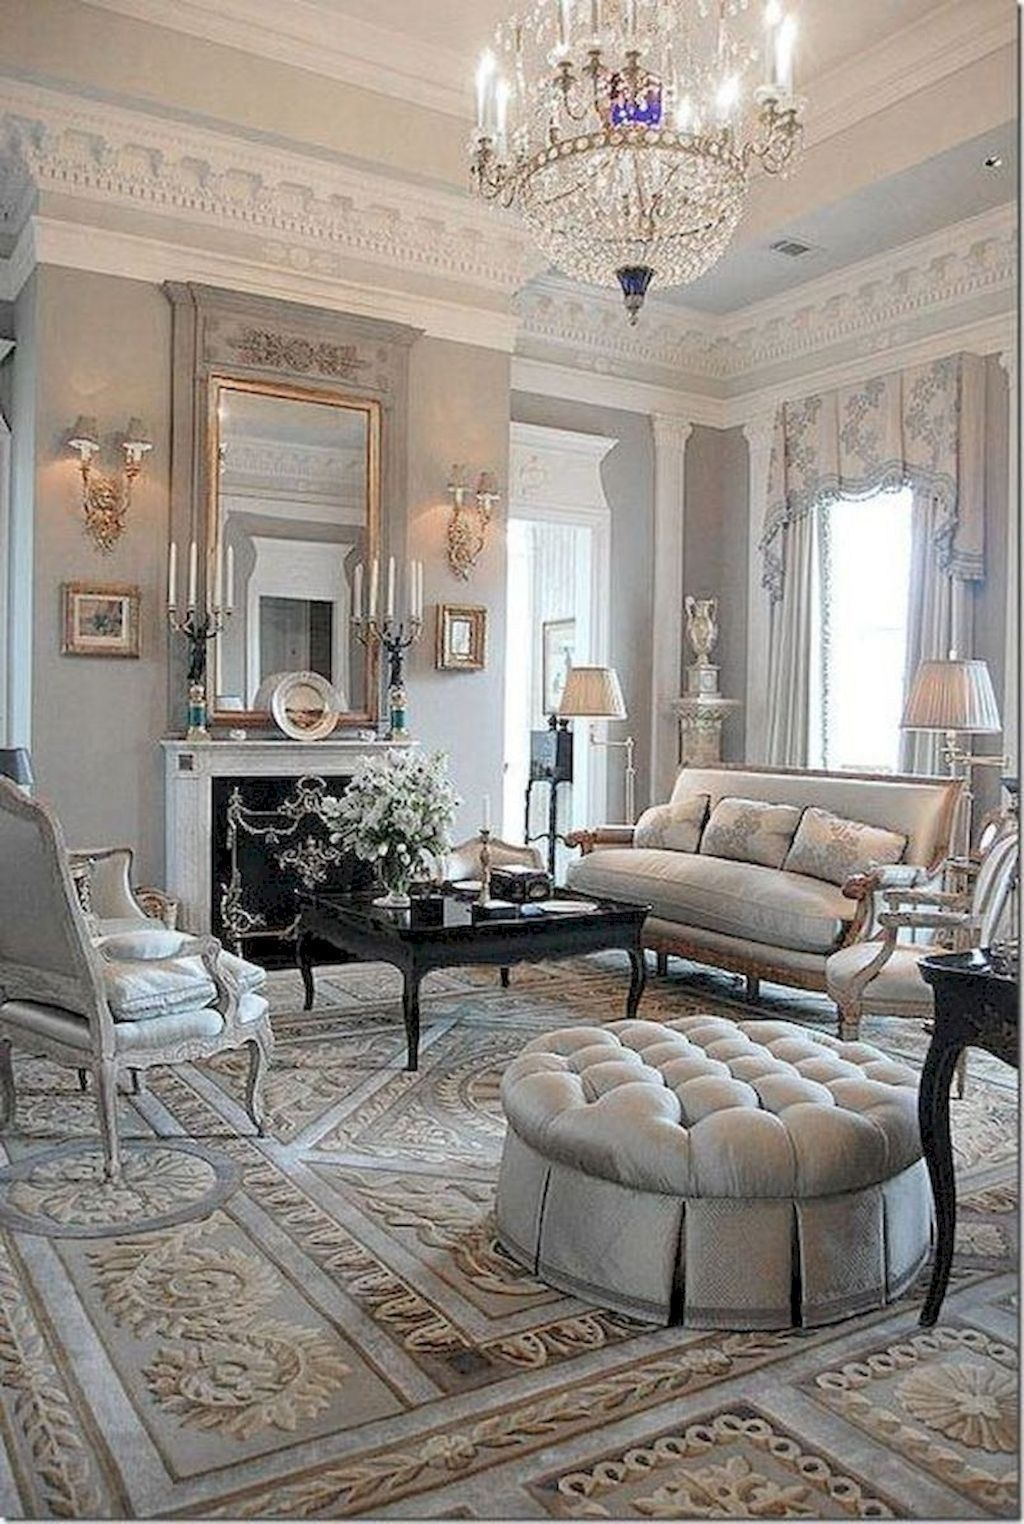 Gorgeous French Country Living Room Decor Ideas 15 French Living Rooms Country Living Room Design French Country Living Room French living room decor